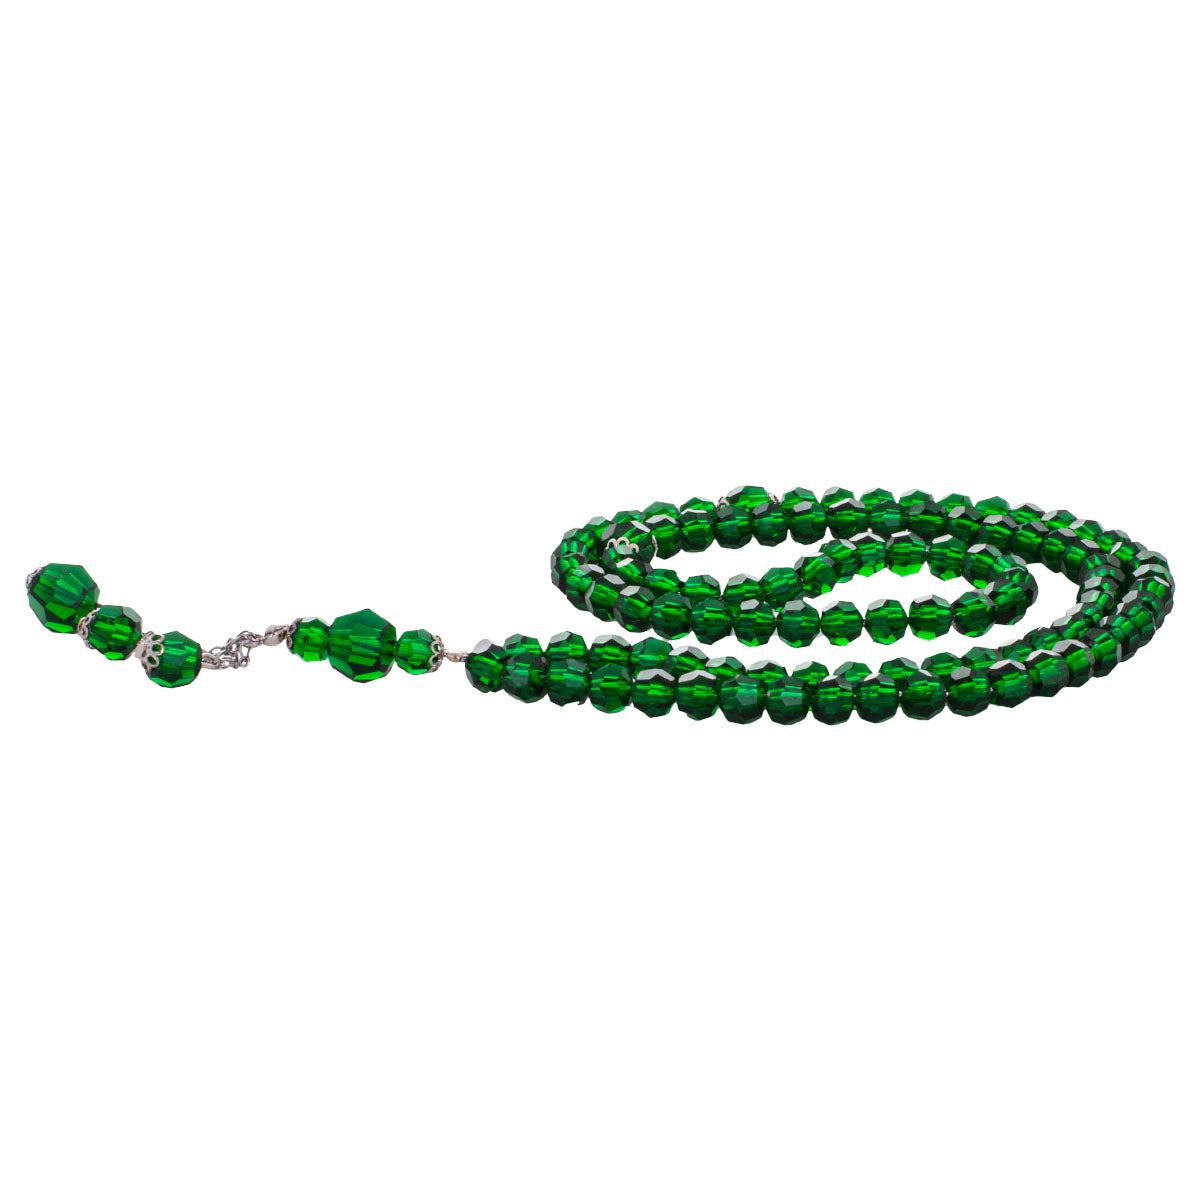 Rosary - Green Radium  - Small Beads